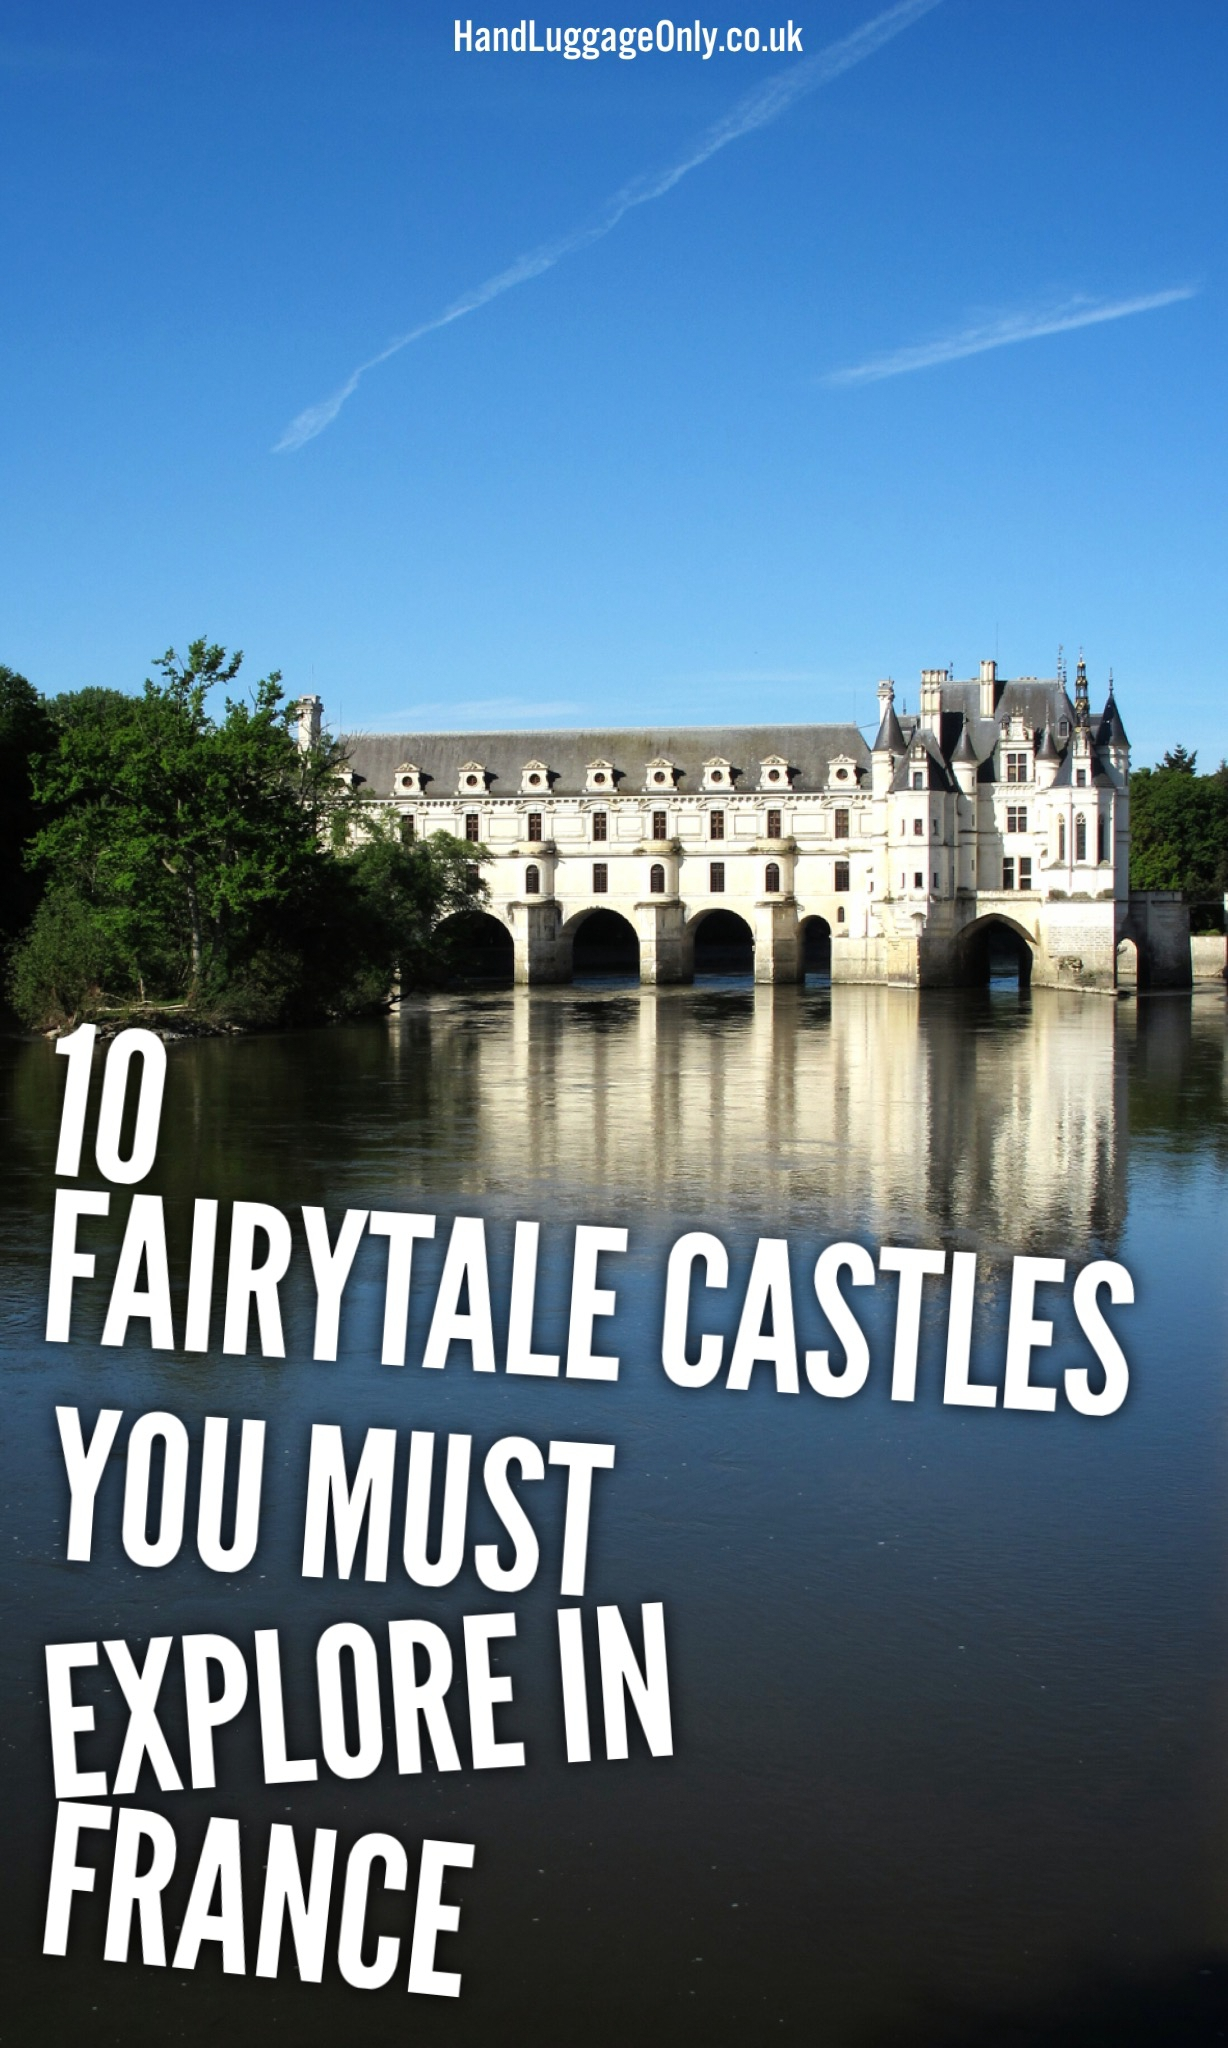 10 Fairytale Castles You Must Explore In France (1)